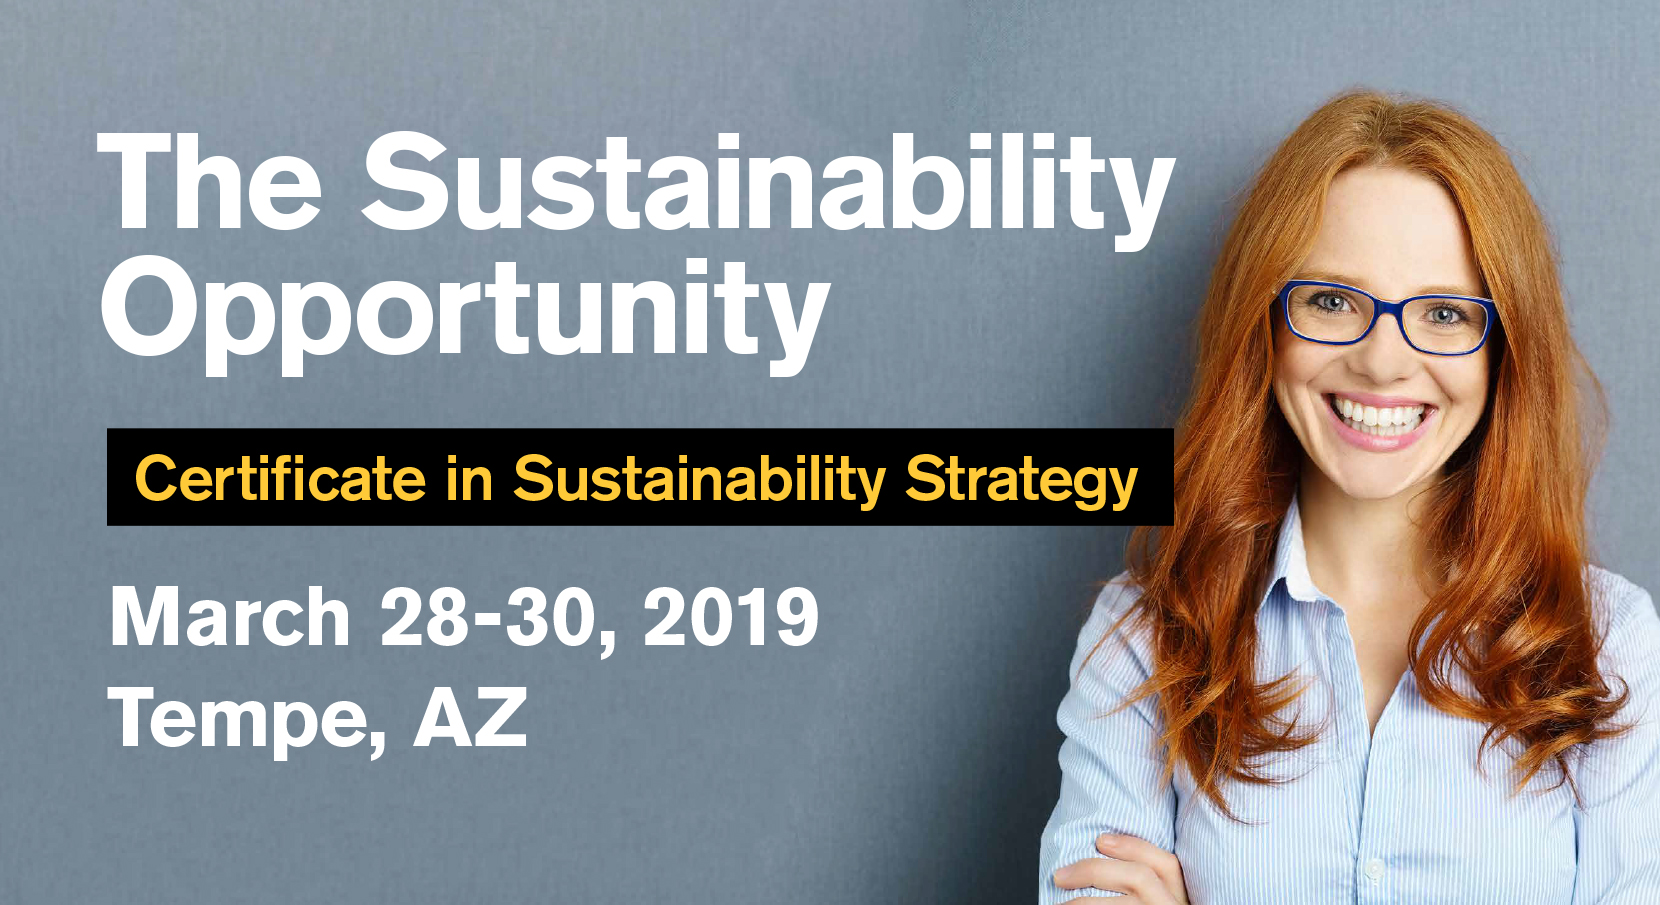 The Sustainability Opportunity - Certificate in Sustainability Strategy